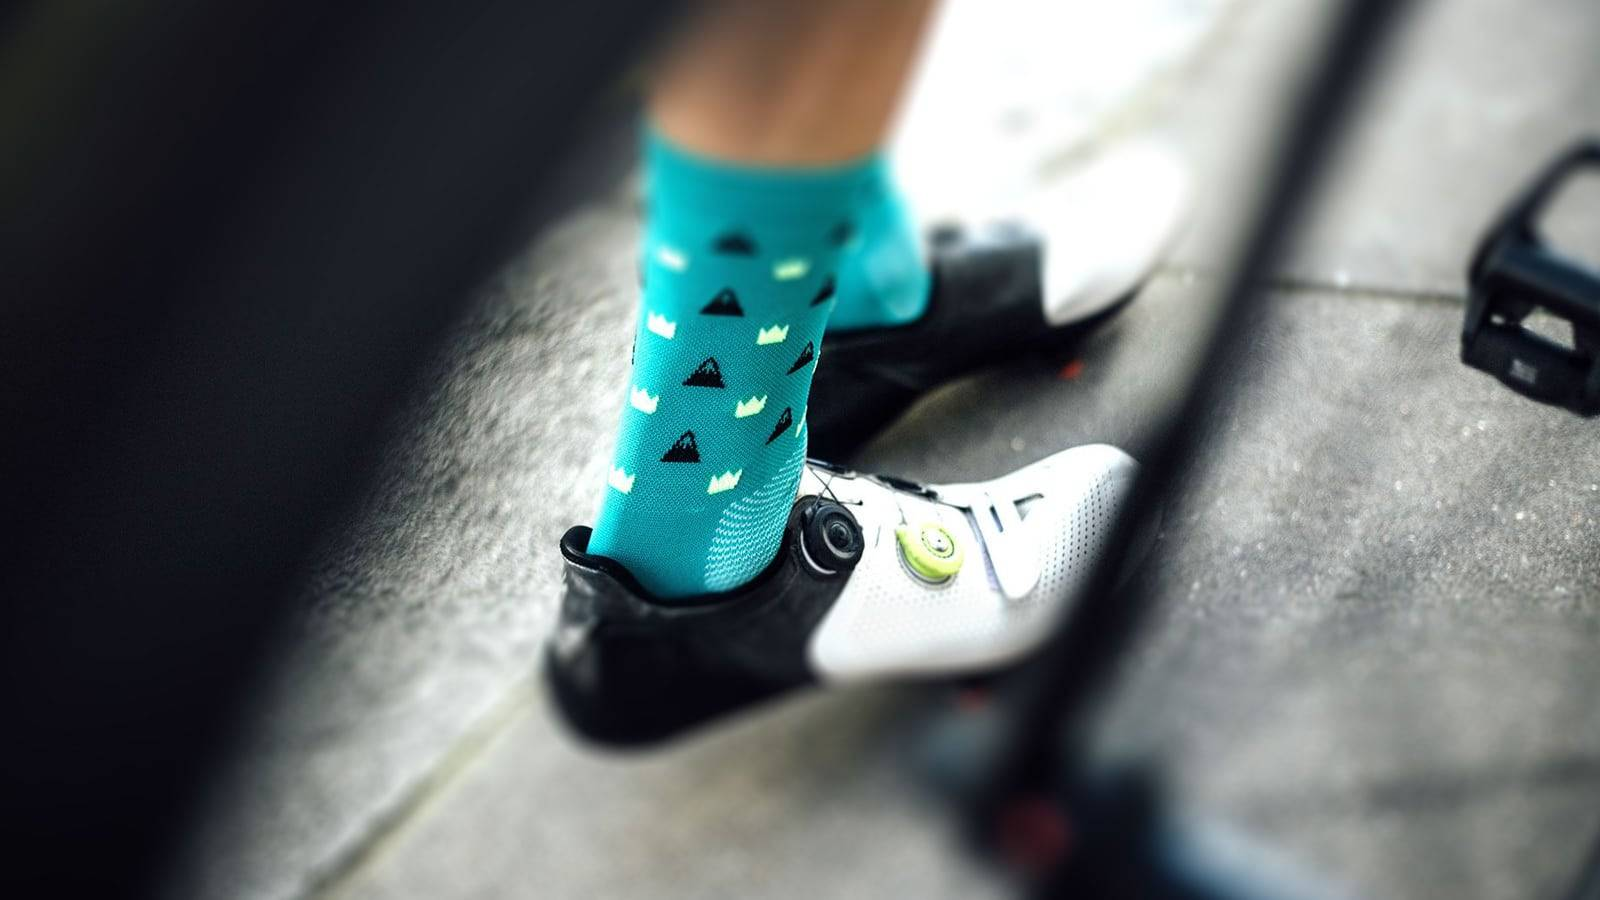 Stylish cycling socks for summer